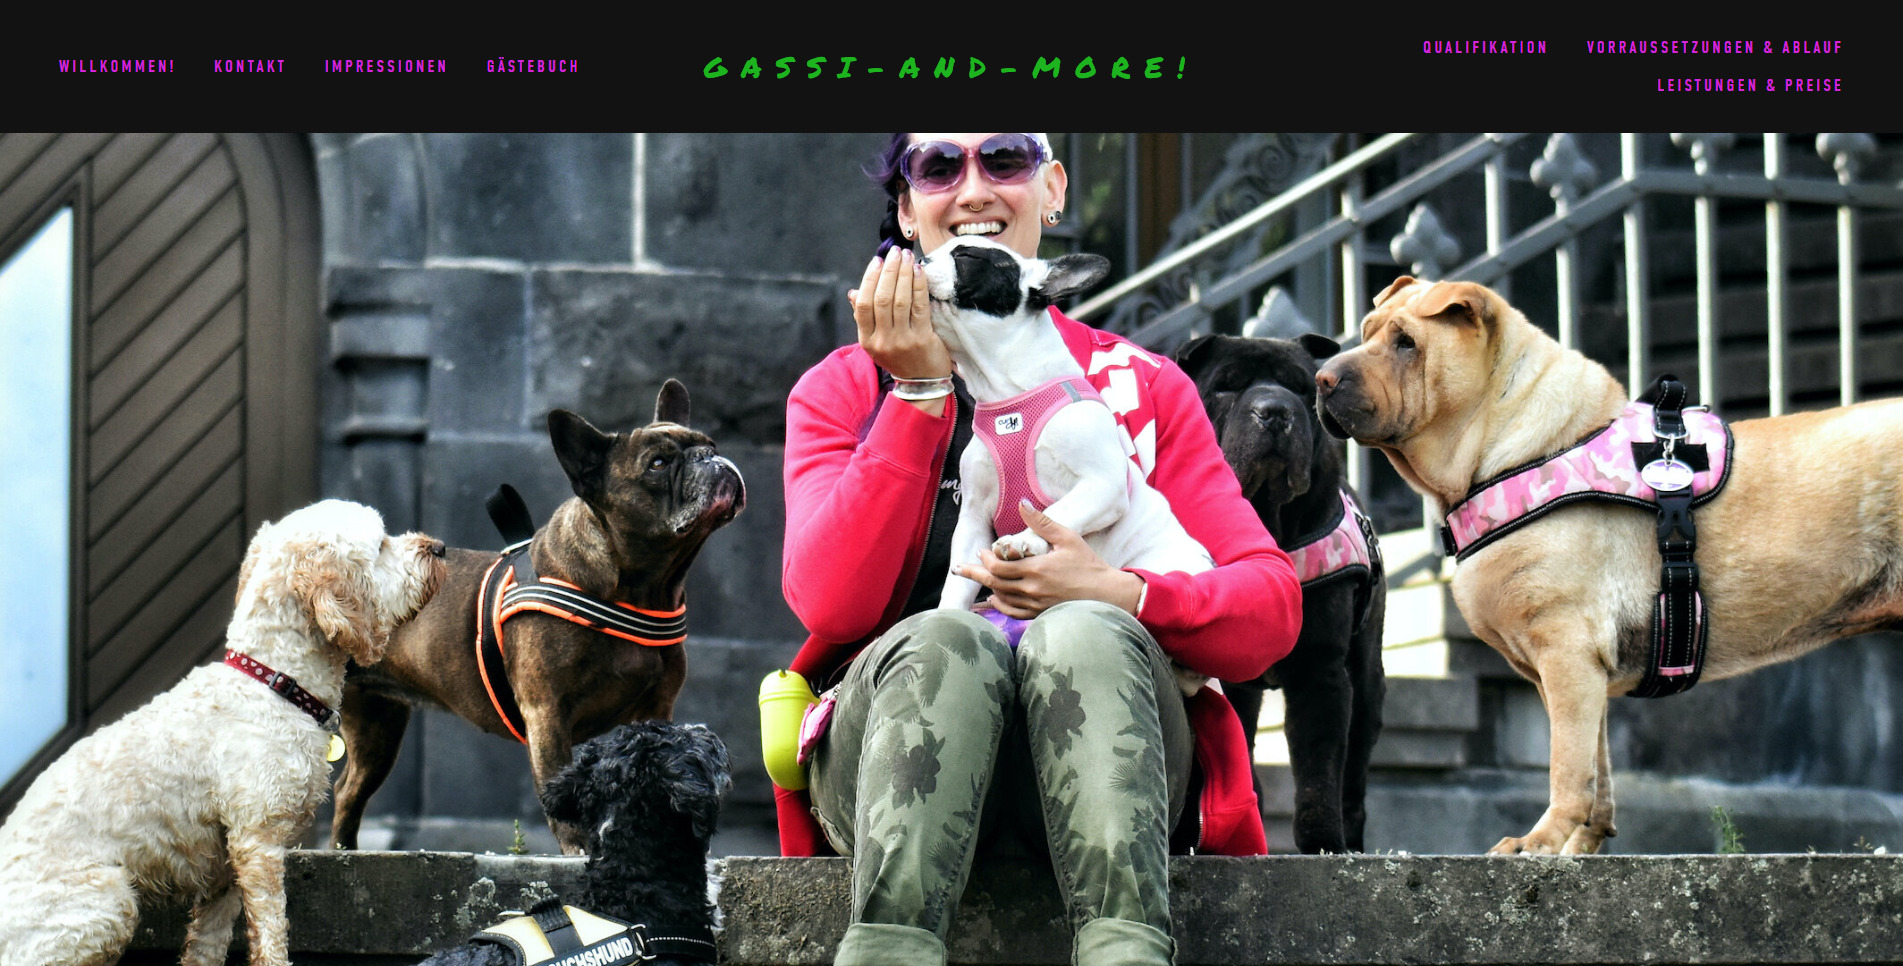 Gassi-and-More